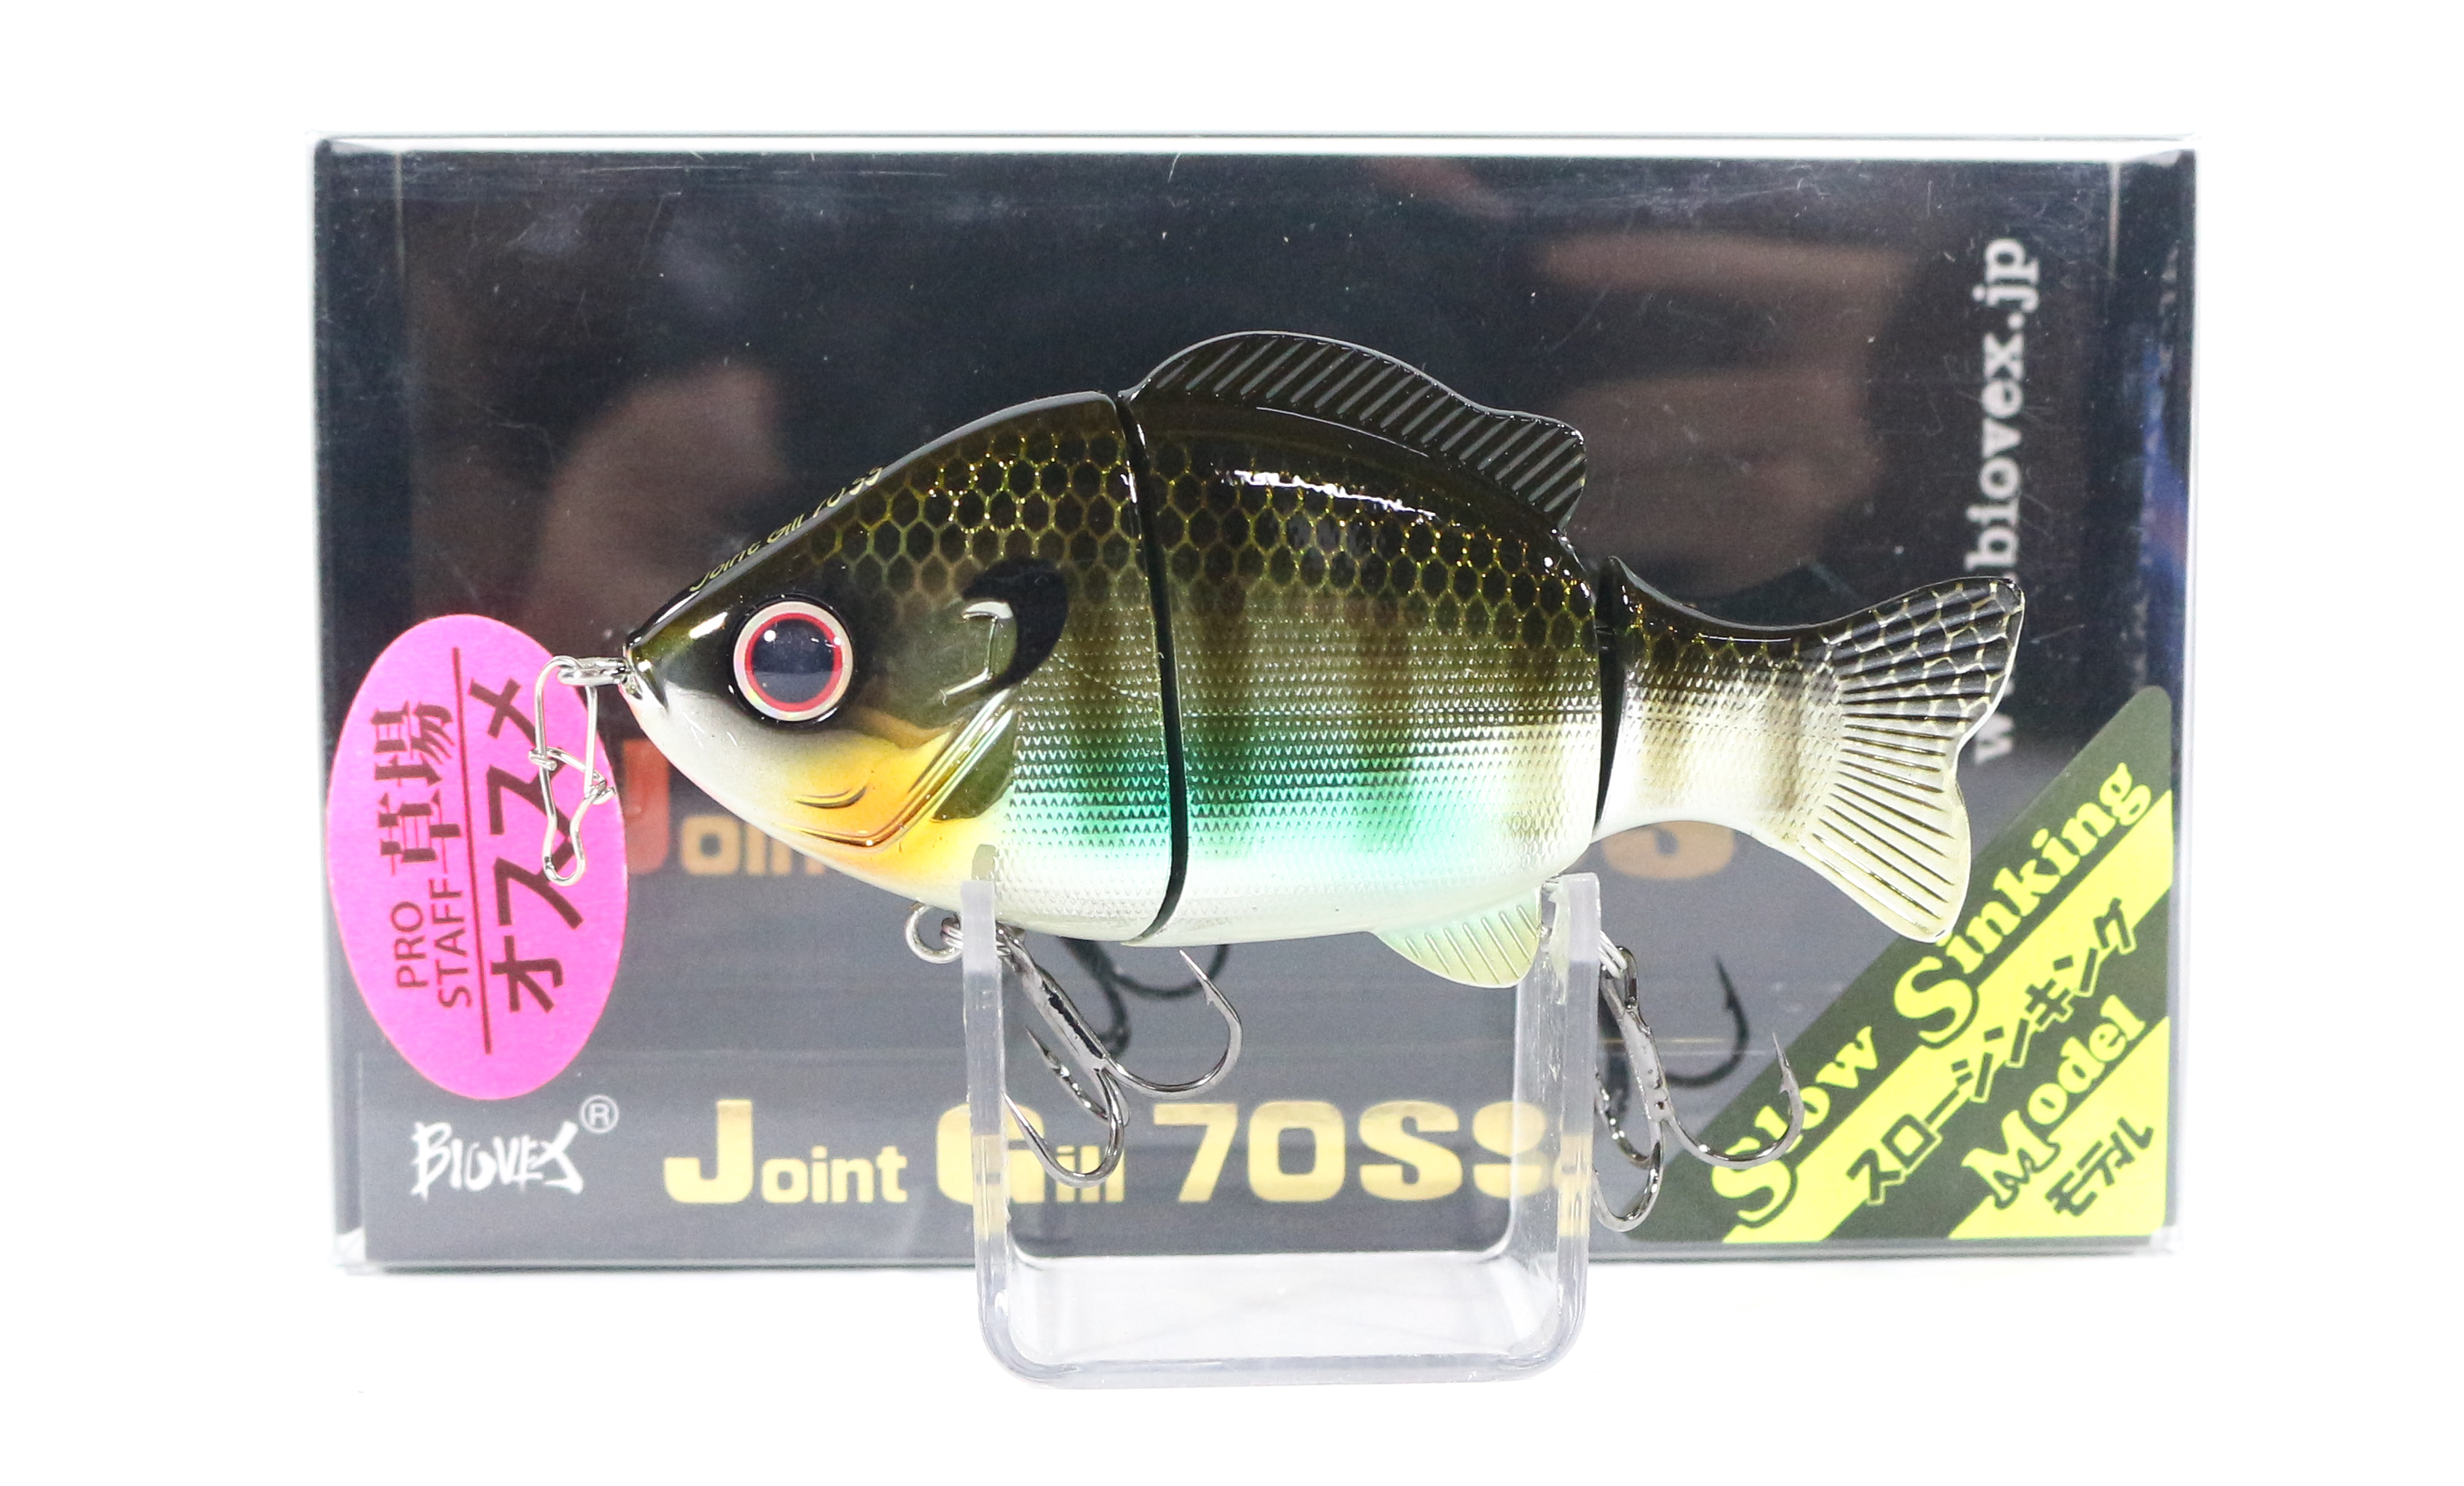 Biovex Joint Gill 70SS Flat Side Slow Sinking Lure 84 (4397)